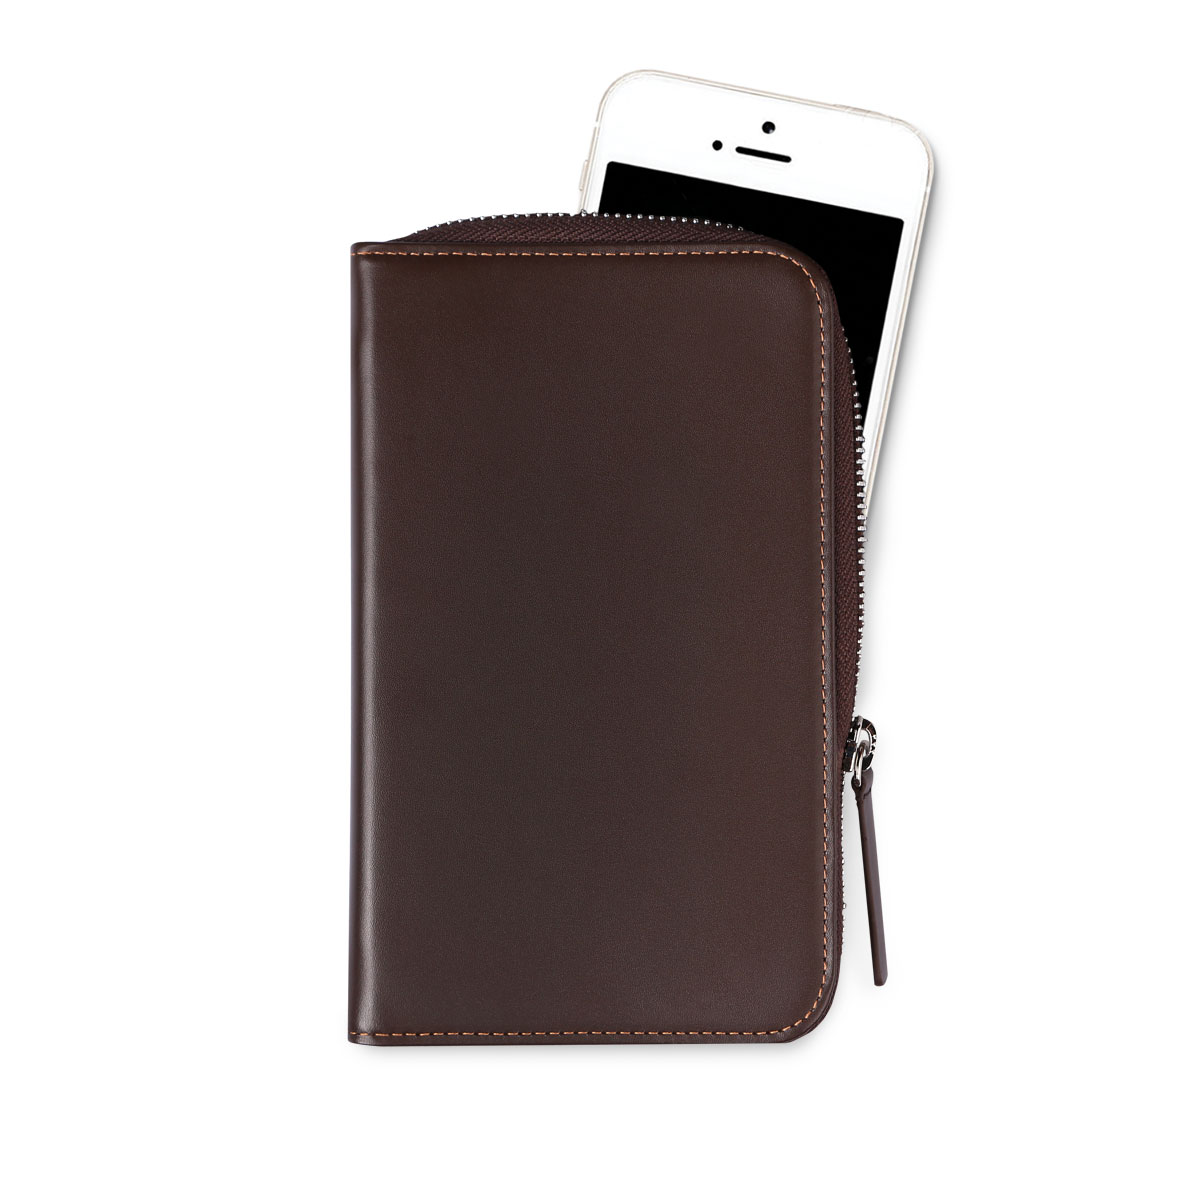 Daily Phone Pocket +_Dark Brown